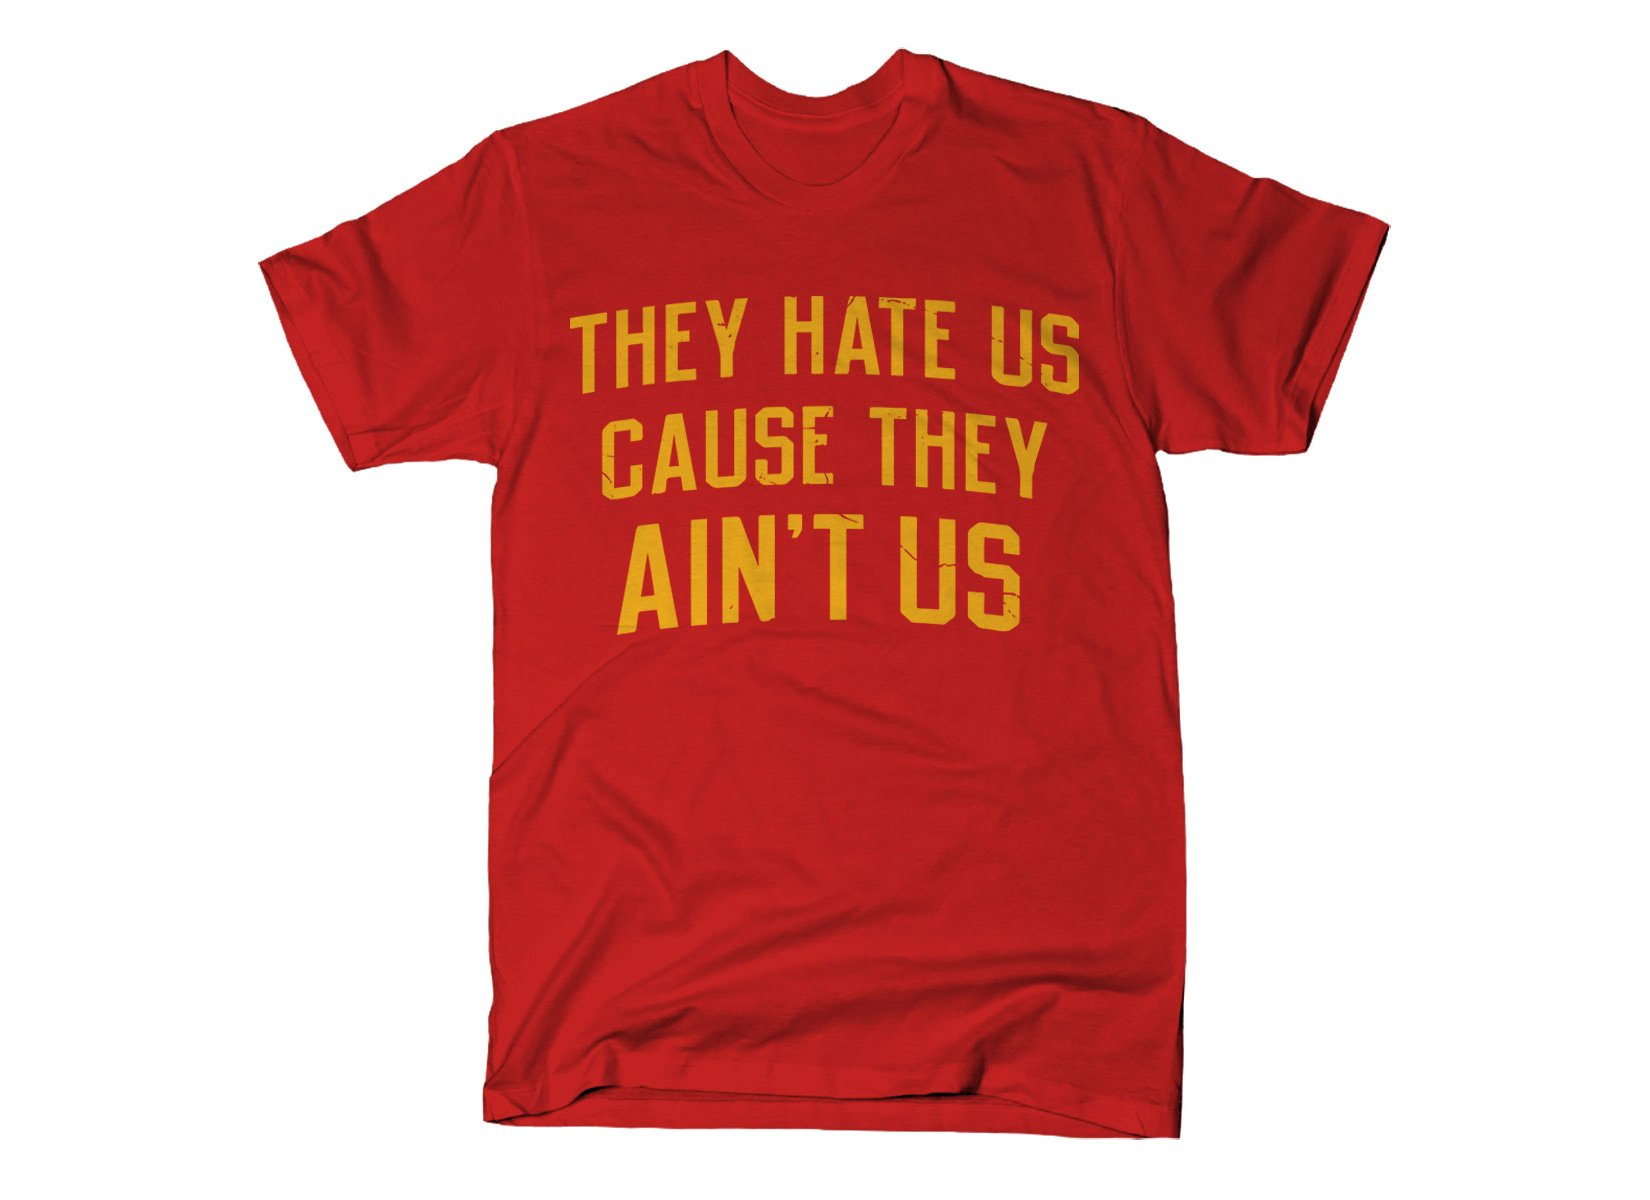 They Hate Us Cause They Ain't Us on Mens T-Shirt